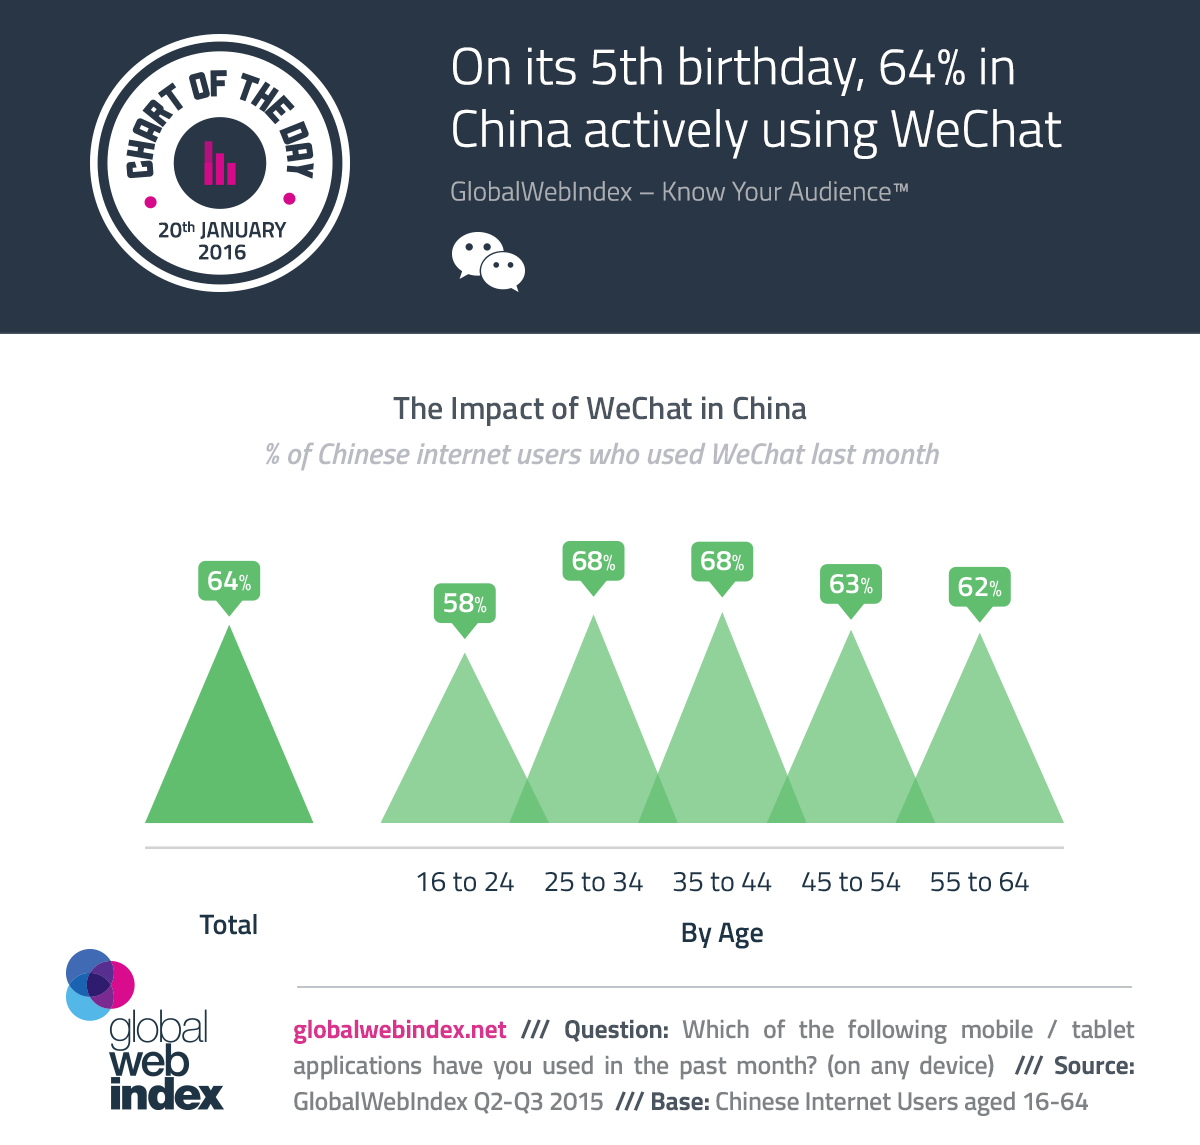 On its 5th birthday, 64% in China actively using WeChat